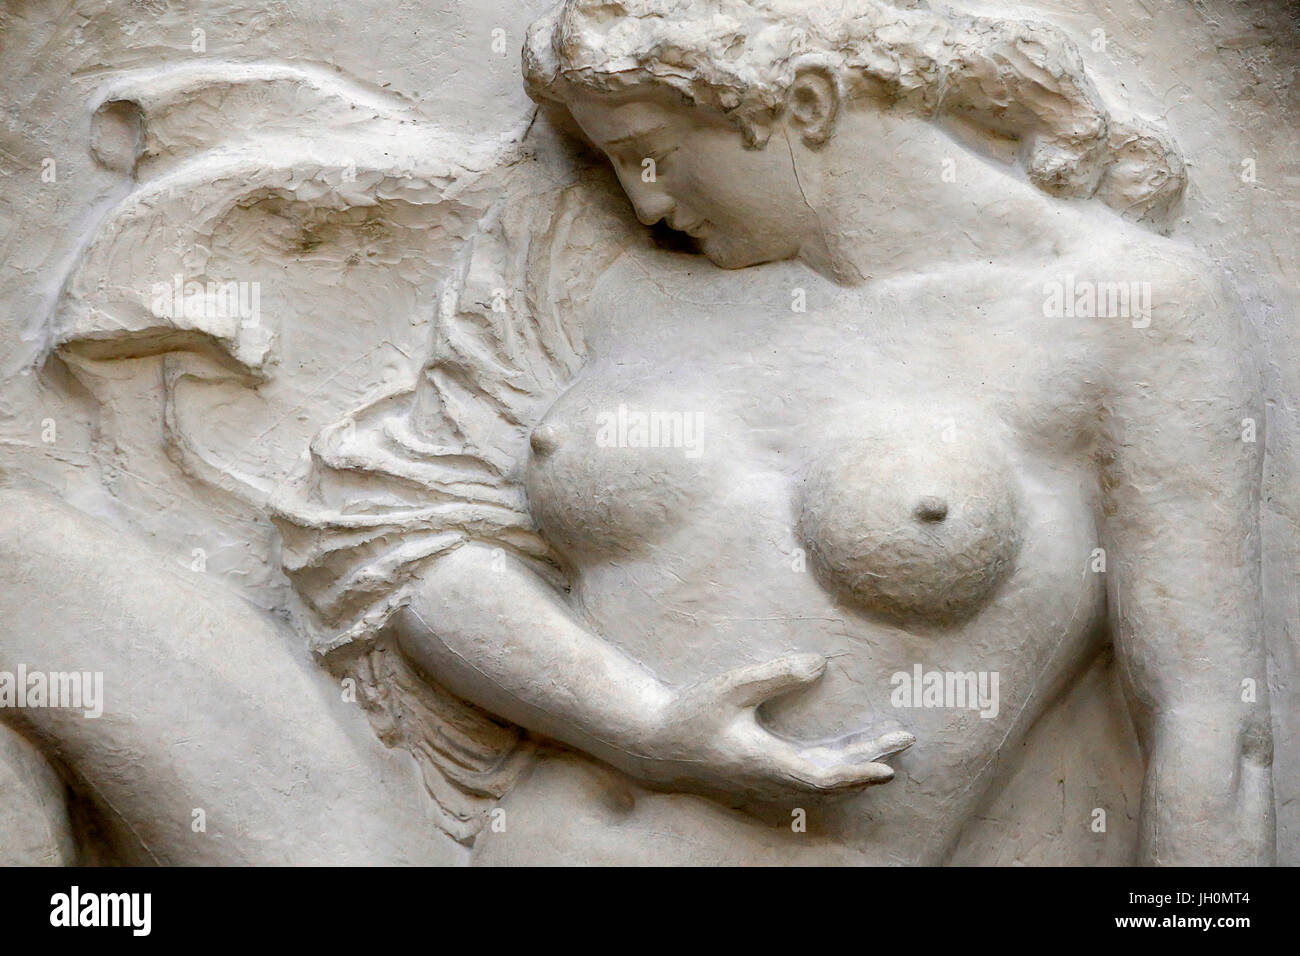 Orsay museum. Aristide Maillol. Bather, also known as the Wave. Plaster relief, c. 1902. Paris. France. - Stock Image